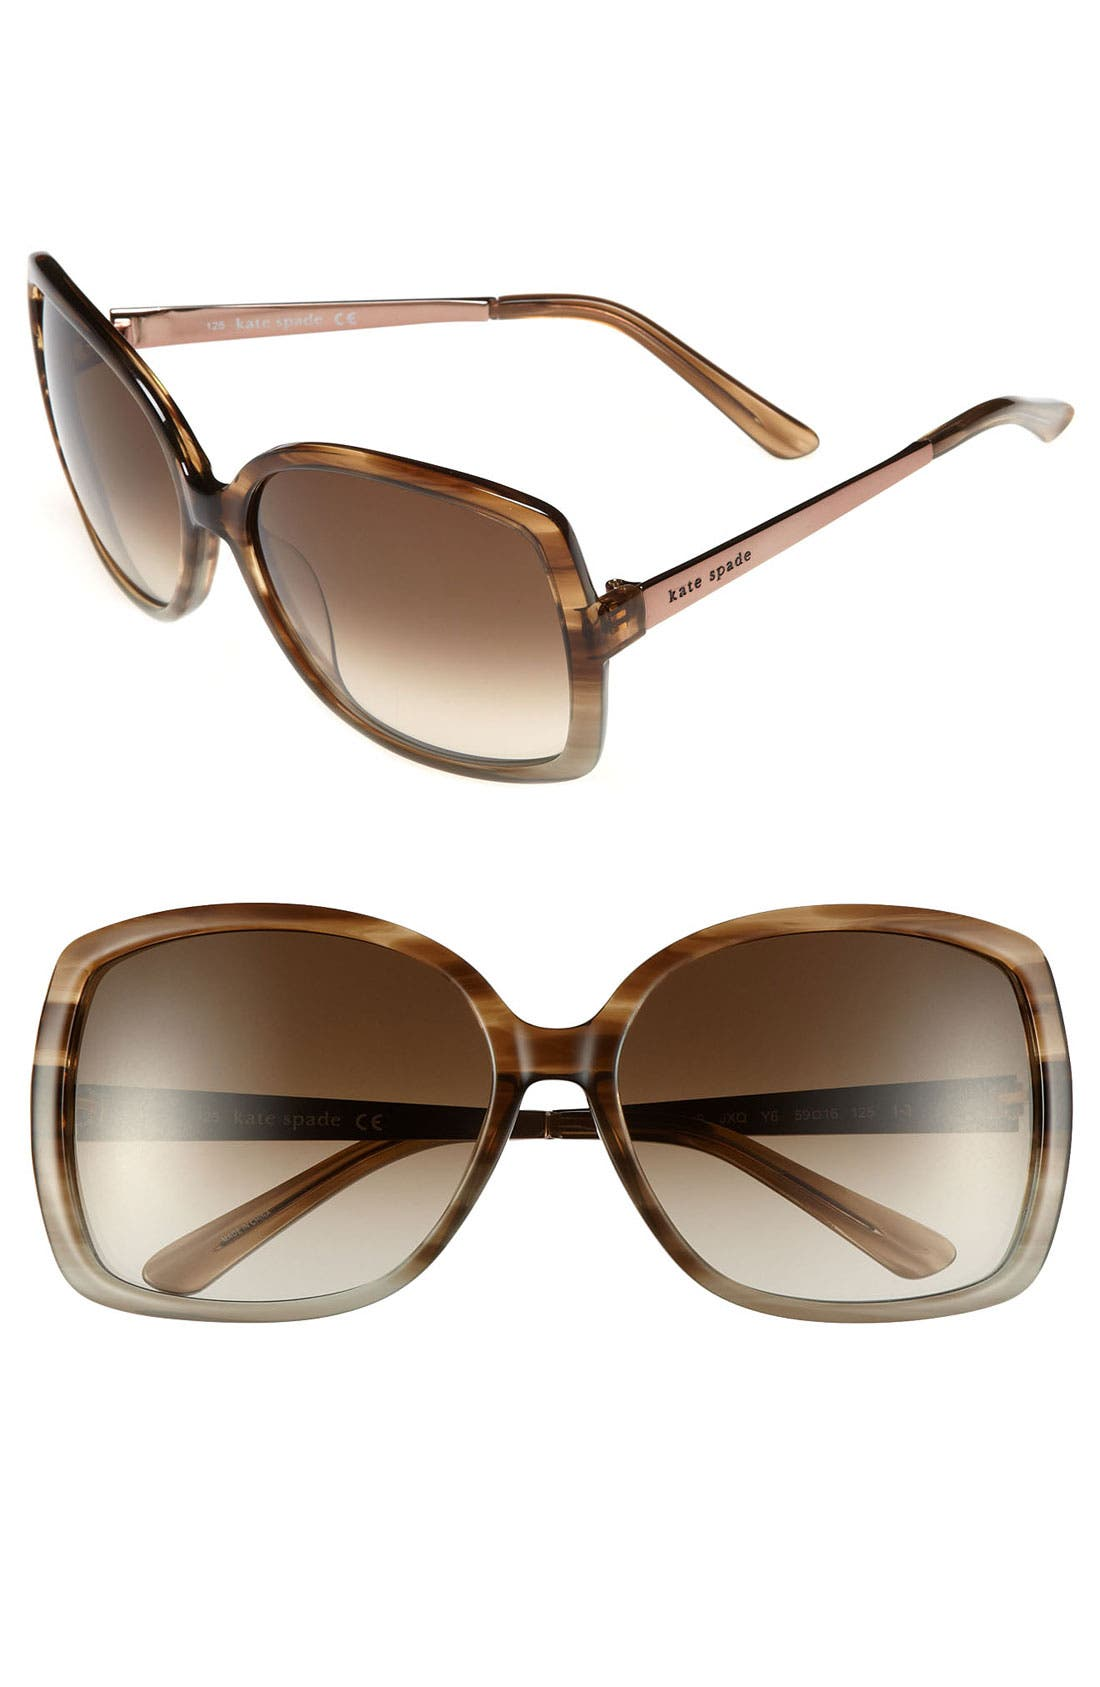 Alternate Image 1 Selected - kate spade new york 'darryl' 59mm sunglasses